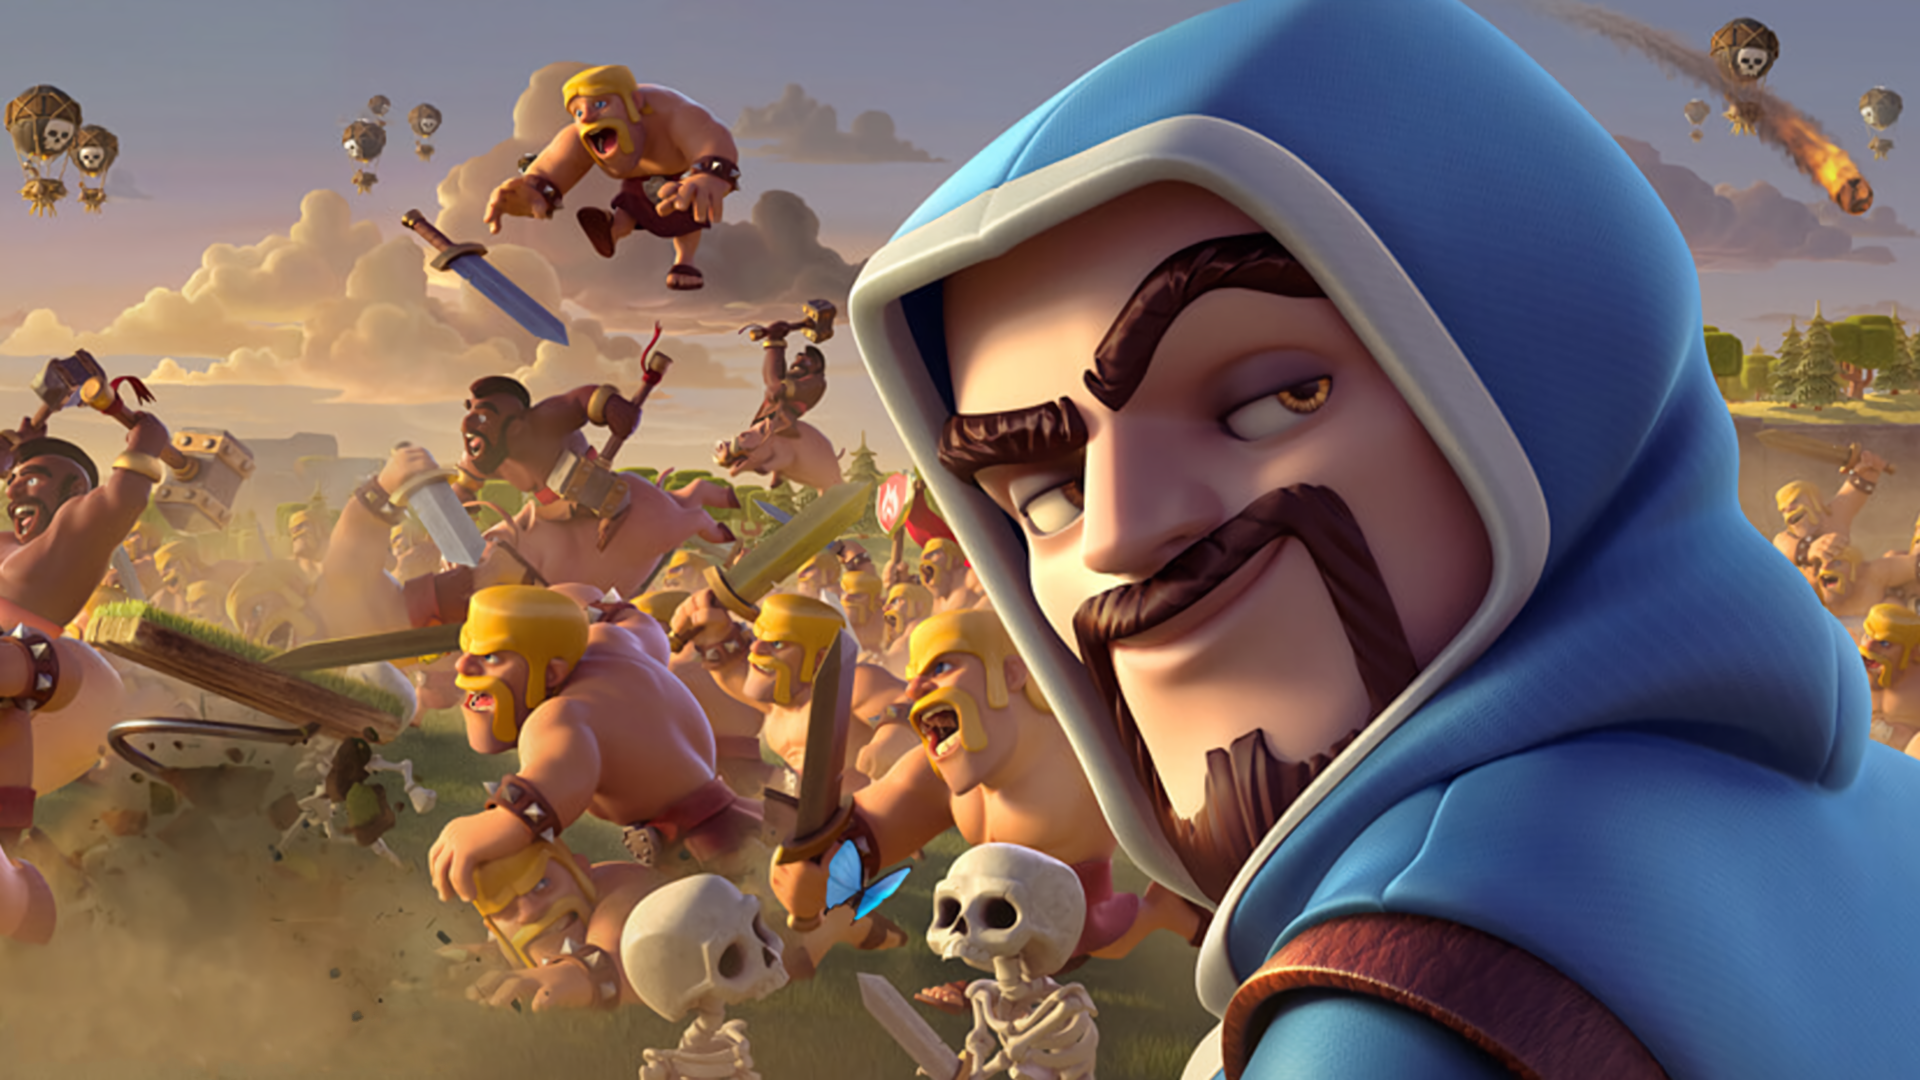 Clash Of Clans Wallpapers Pictures Images 1920x1080